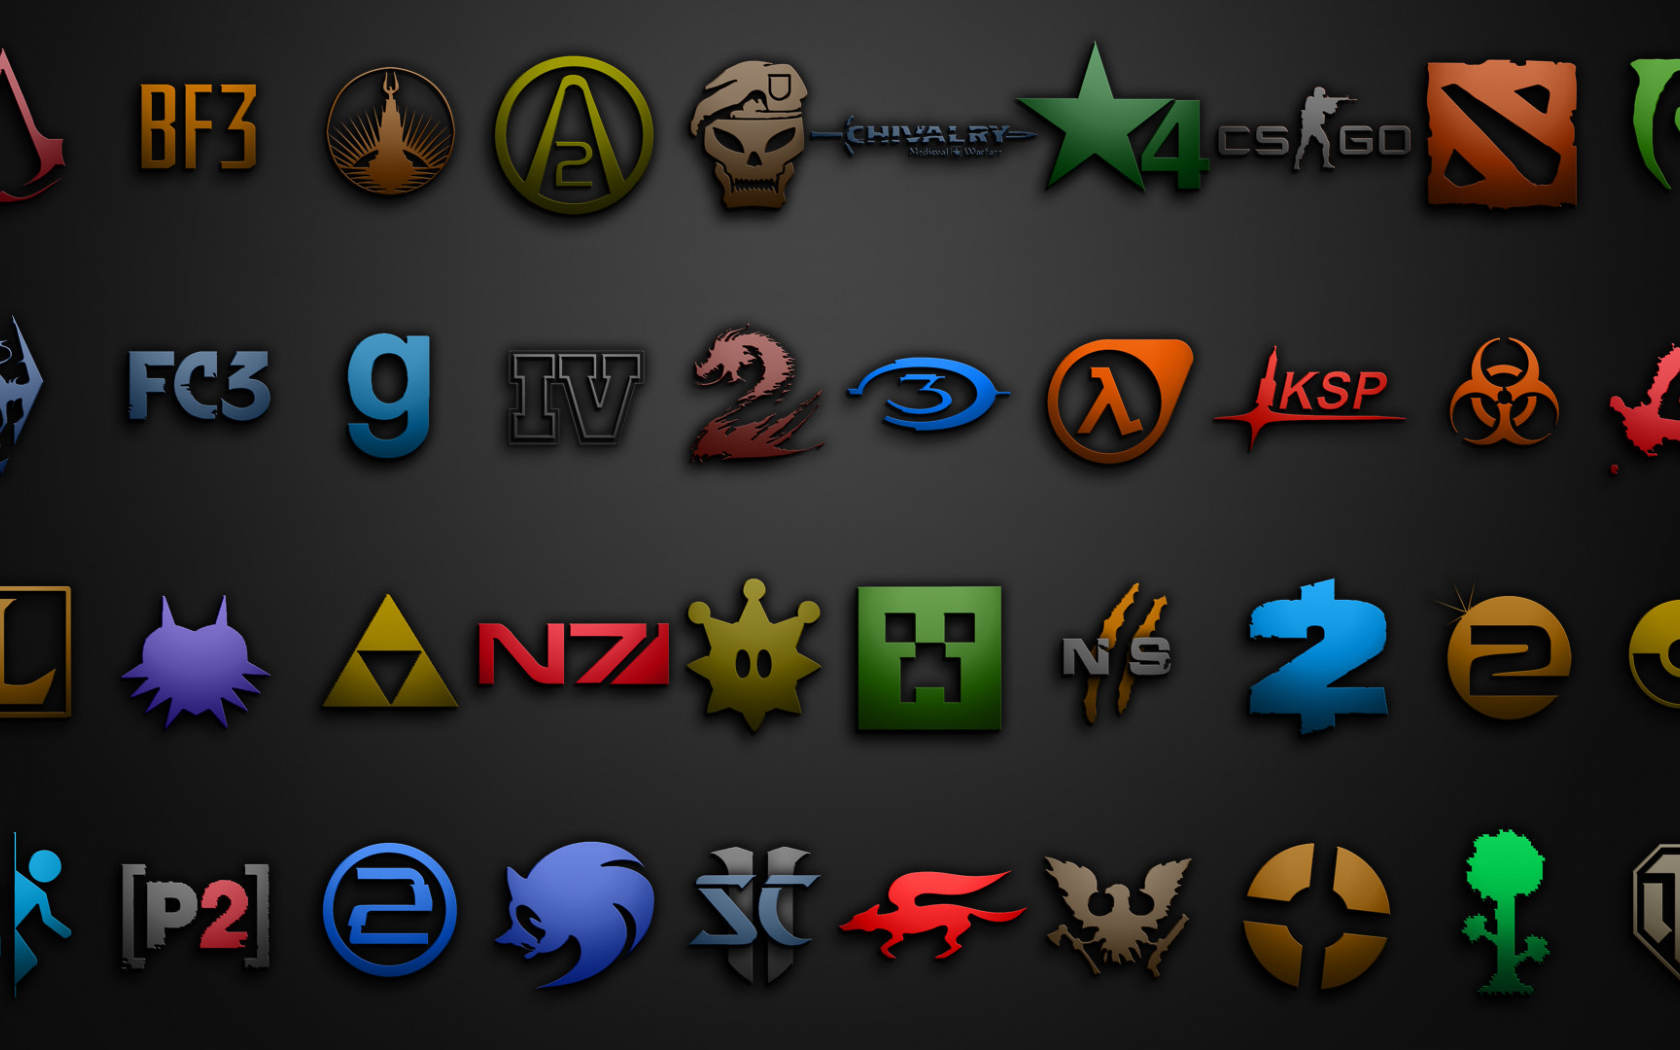 Classic Video Game Wallpaper Icons 1920x1080 Download Resolutions Desktop